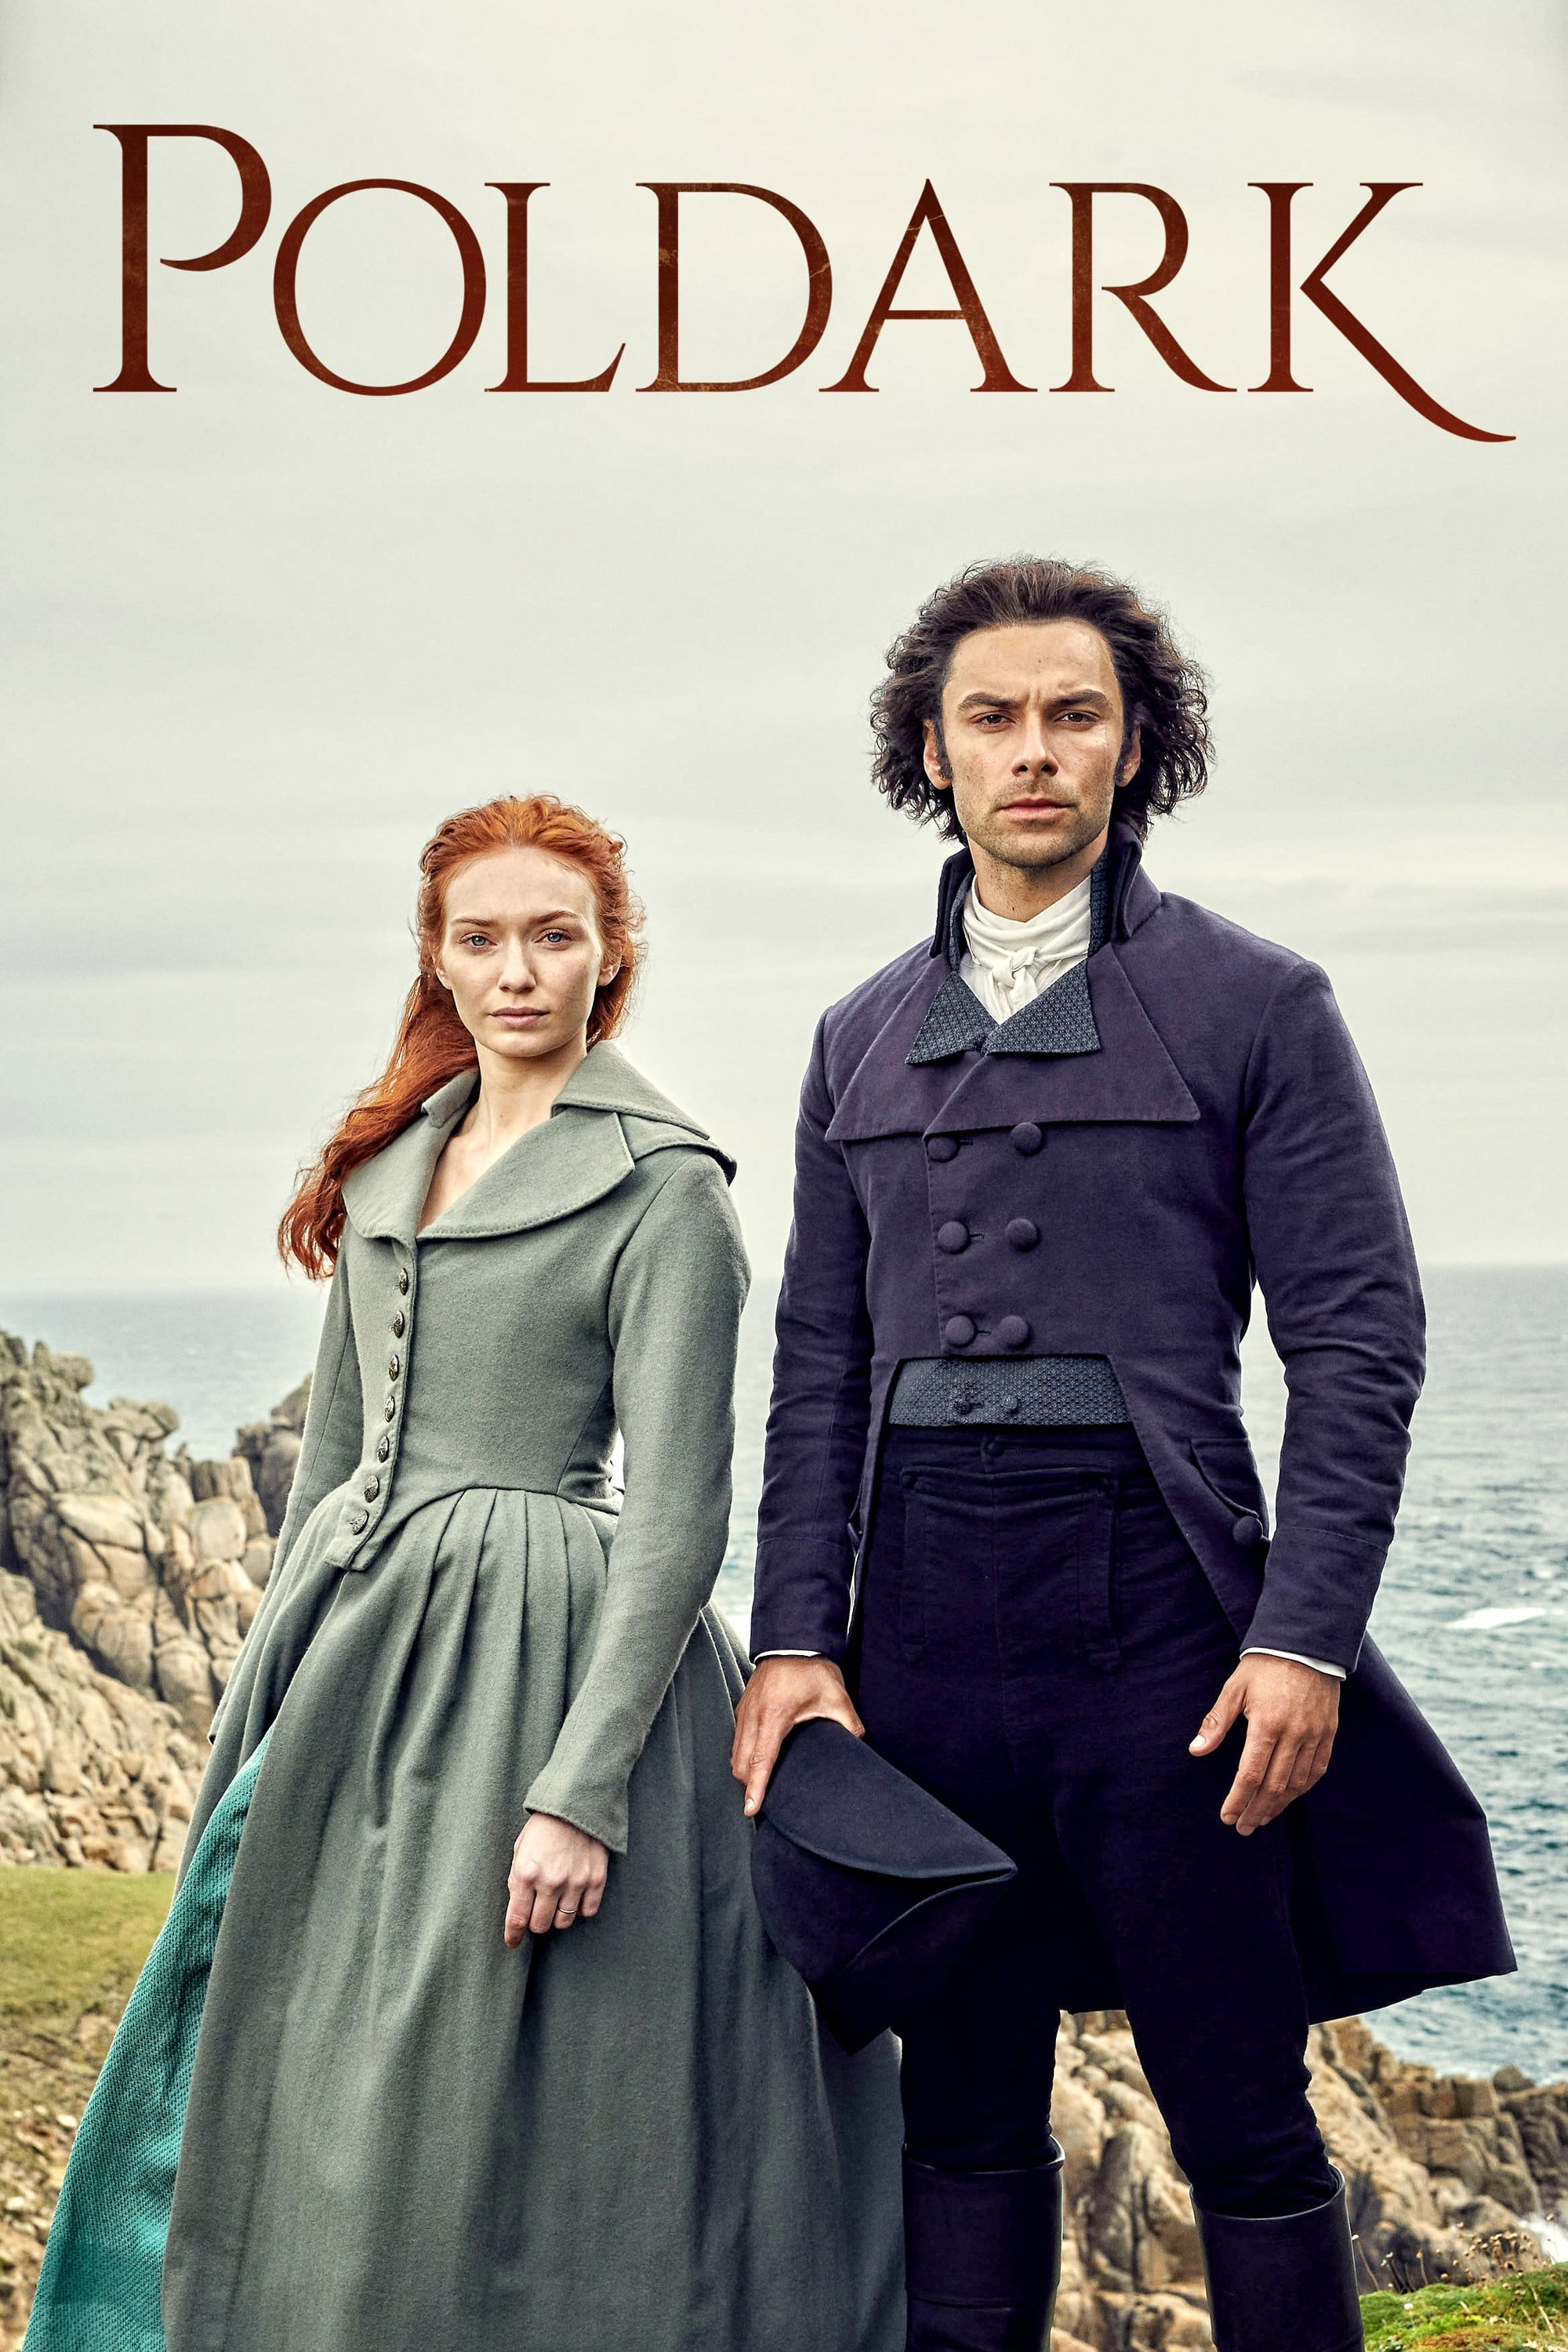 image for Poldark